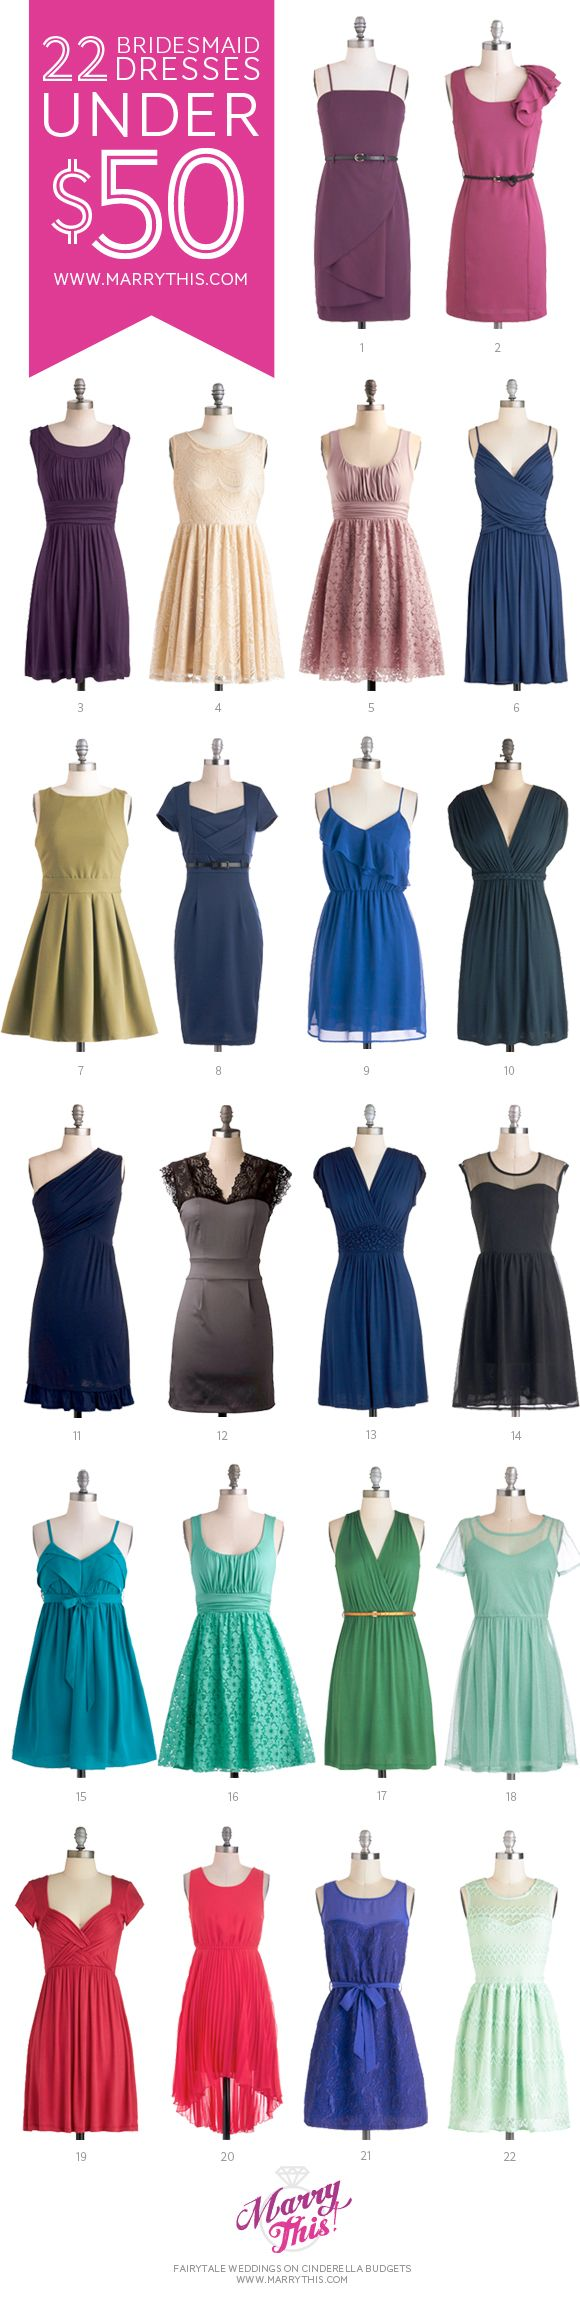 Bridesmaid Dress Roundup!22 Dresses Under $50by Allison on April ...